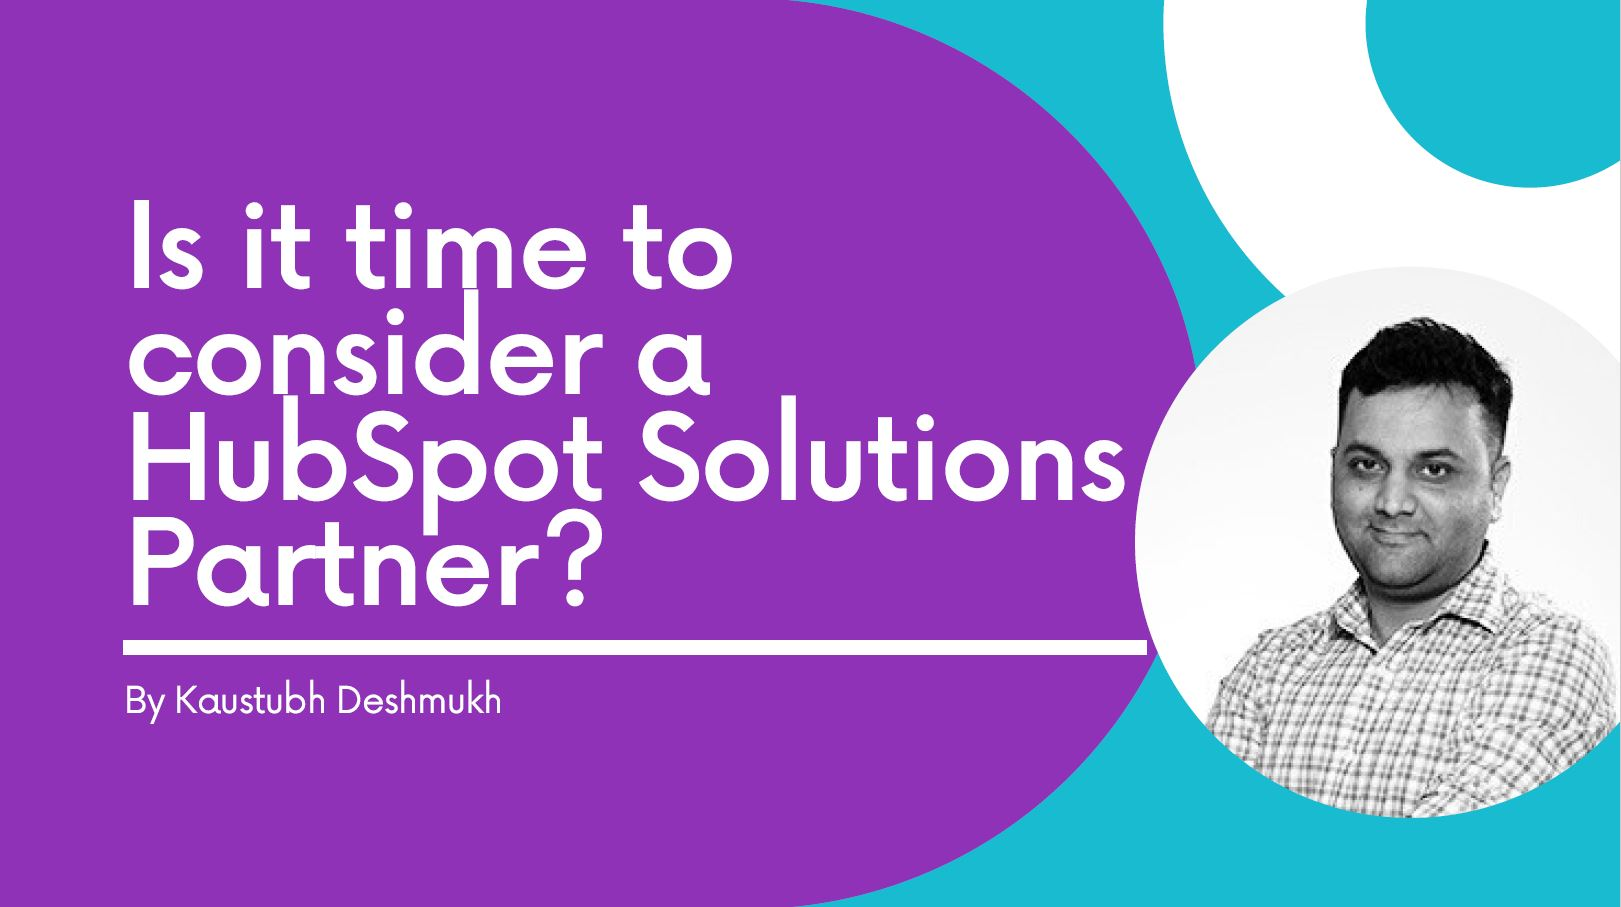 Is it time to consider a HubSpot Solution Partner?